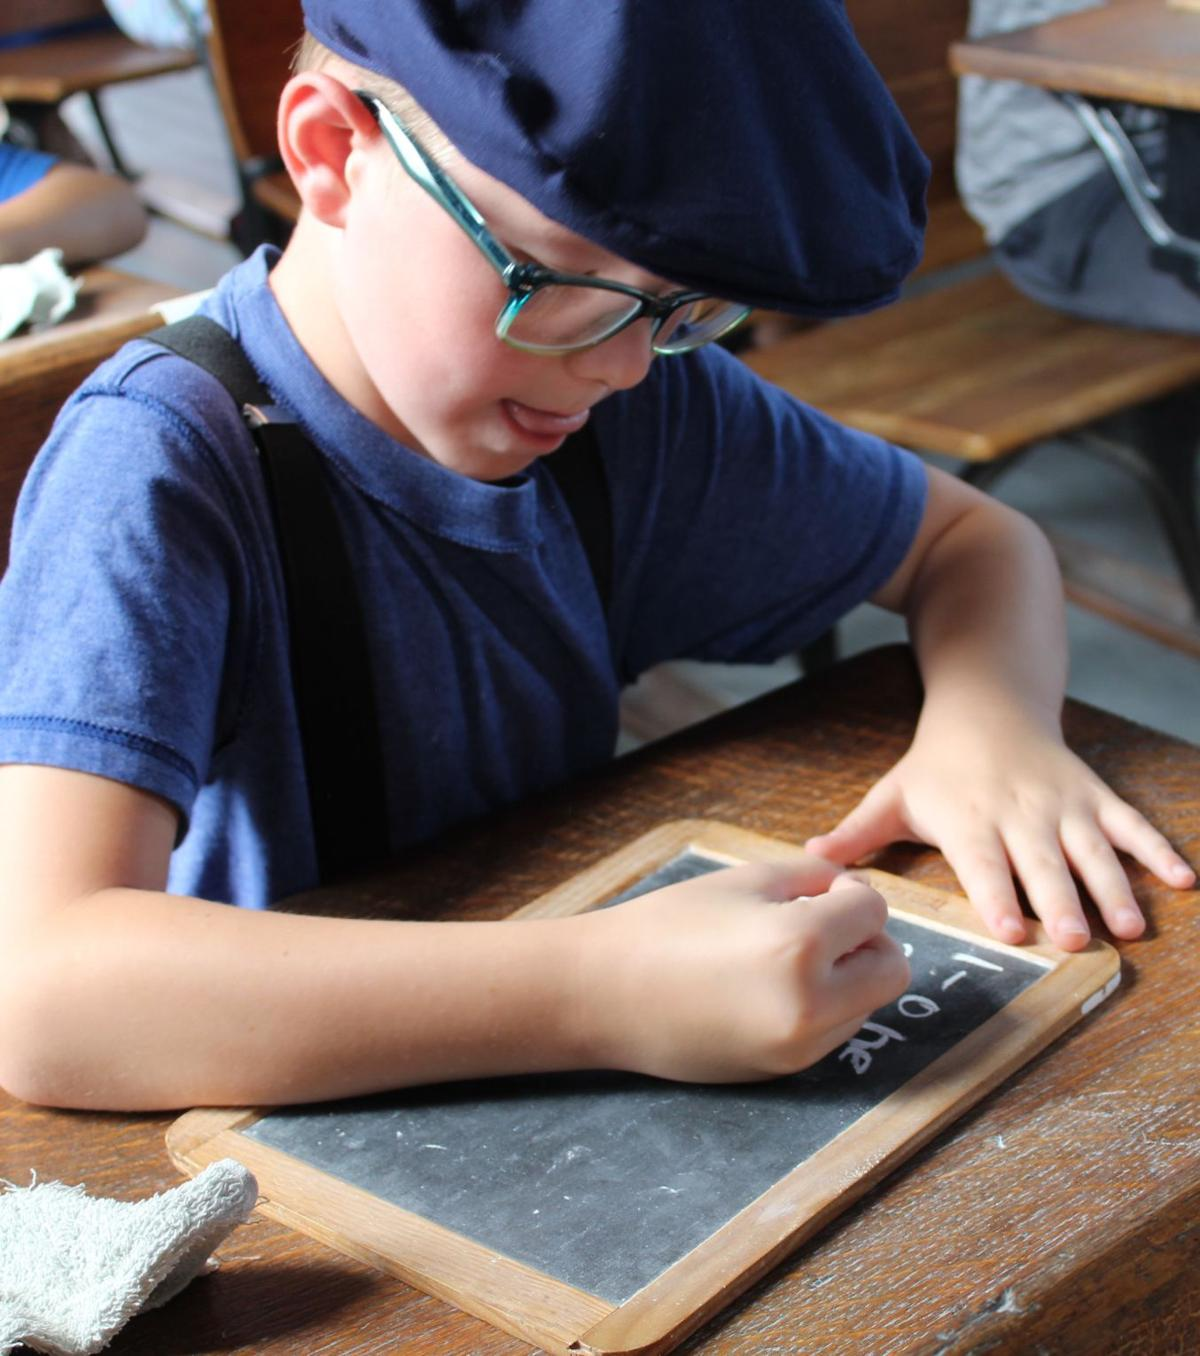 Student writing on slate at their desk during schoolhouse lesson